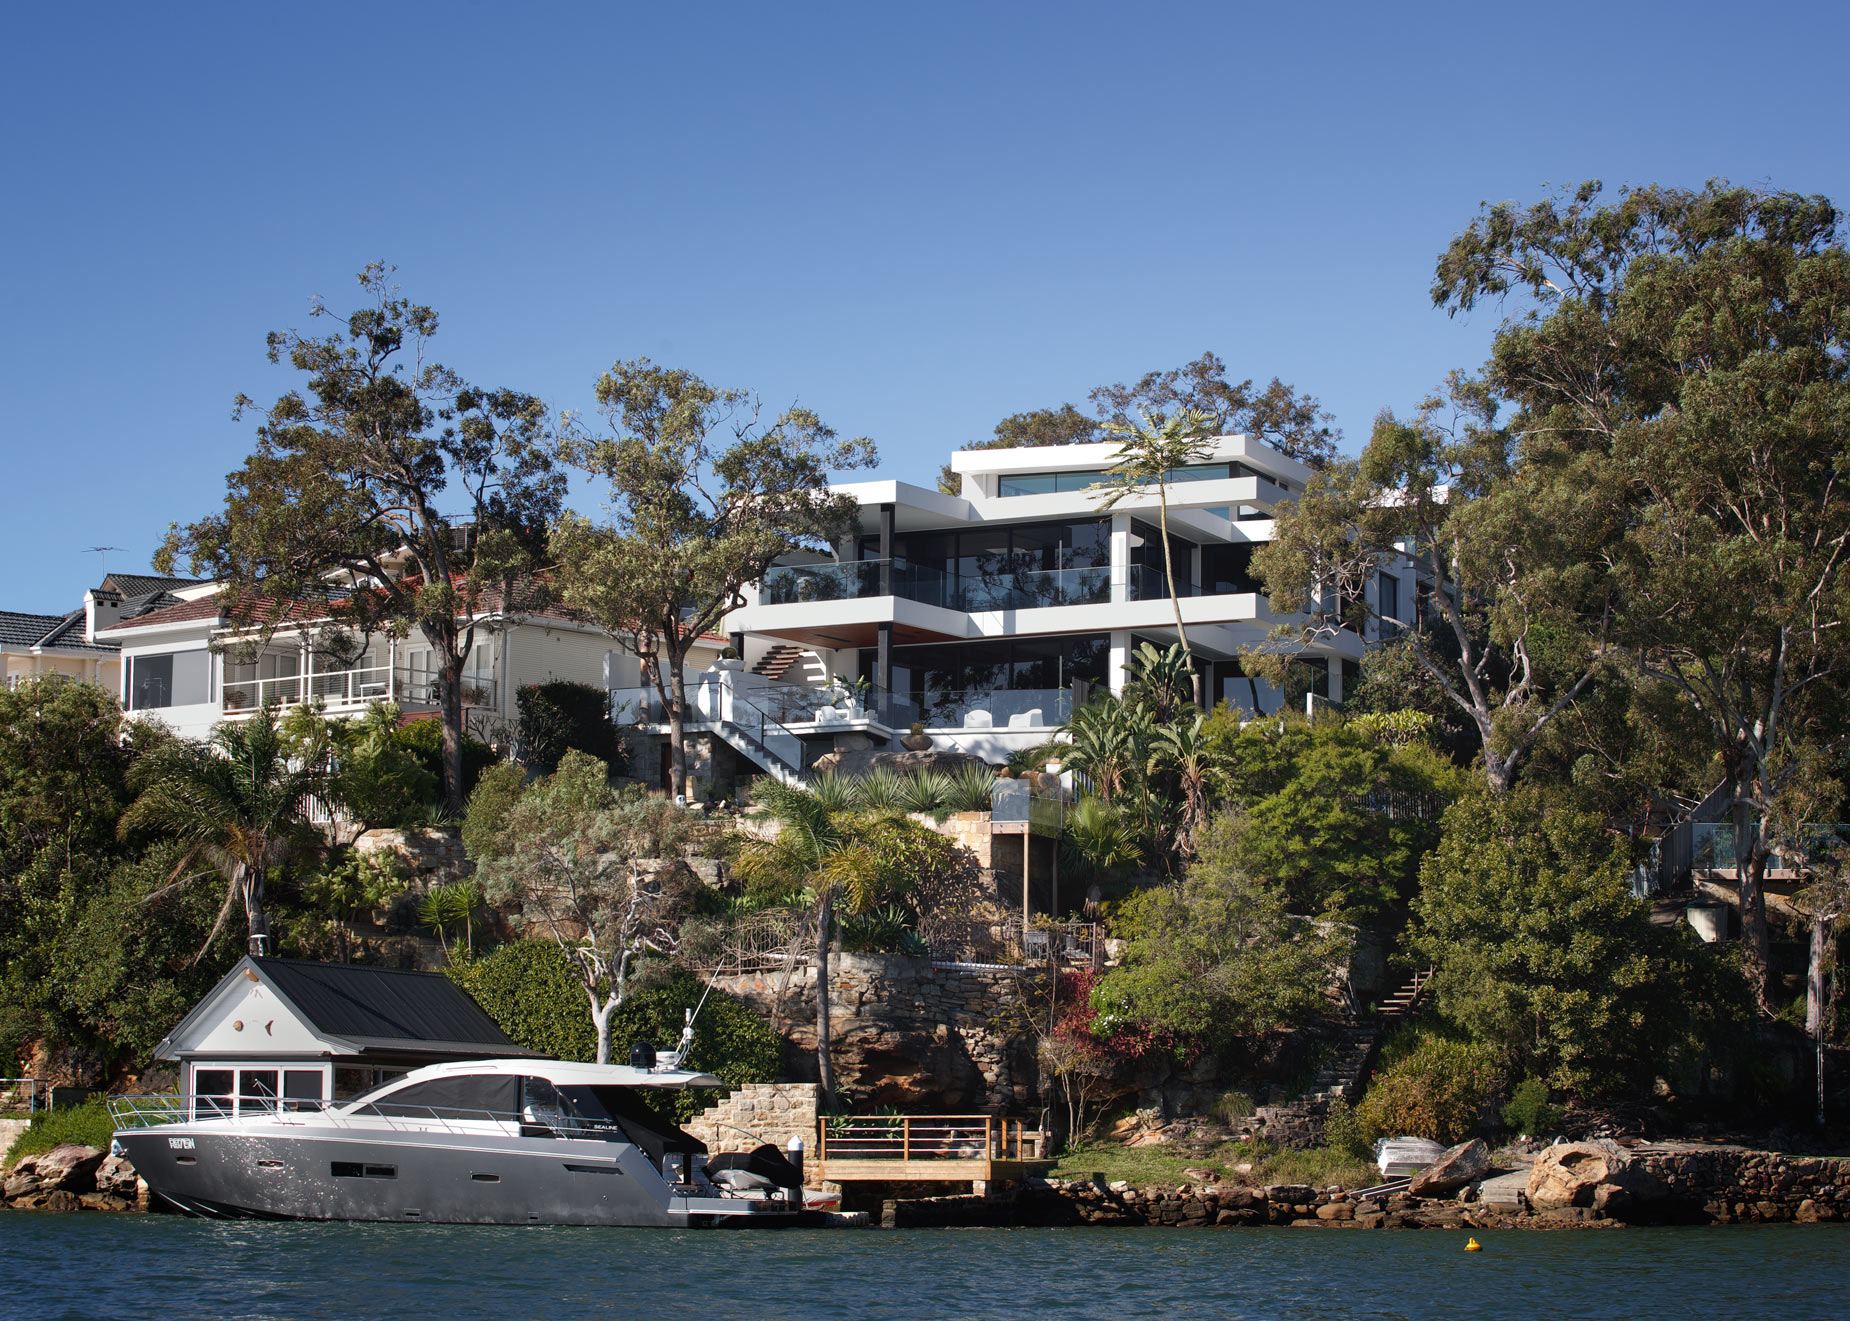 luke-butterly-2020-Oyster-Bay-House-by-Couvaras-Architecture-Sydney-NSW-61